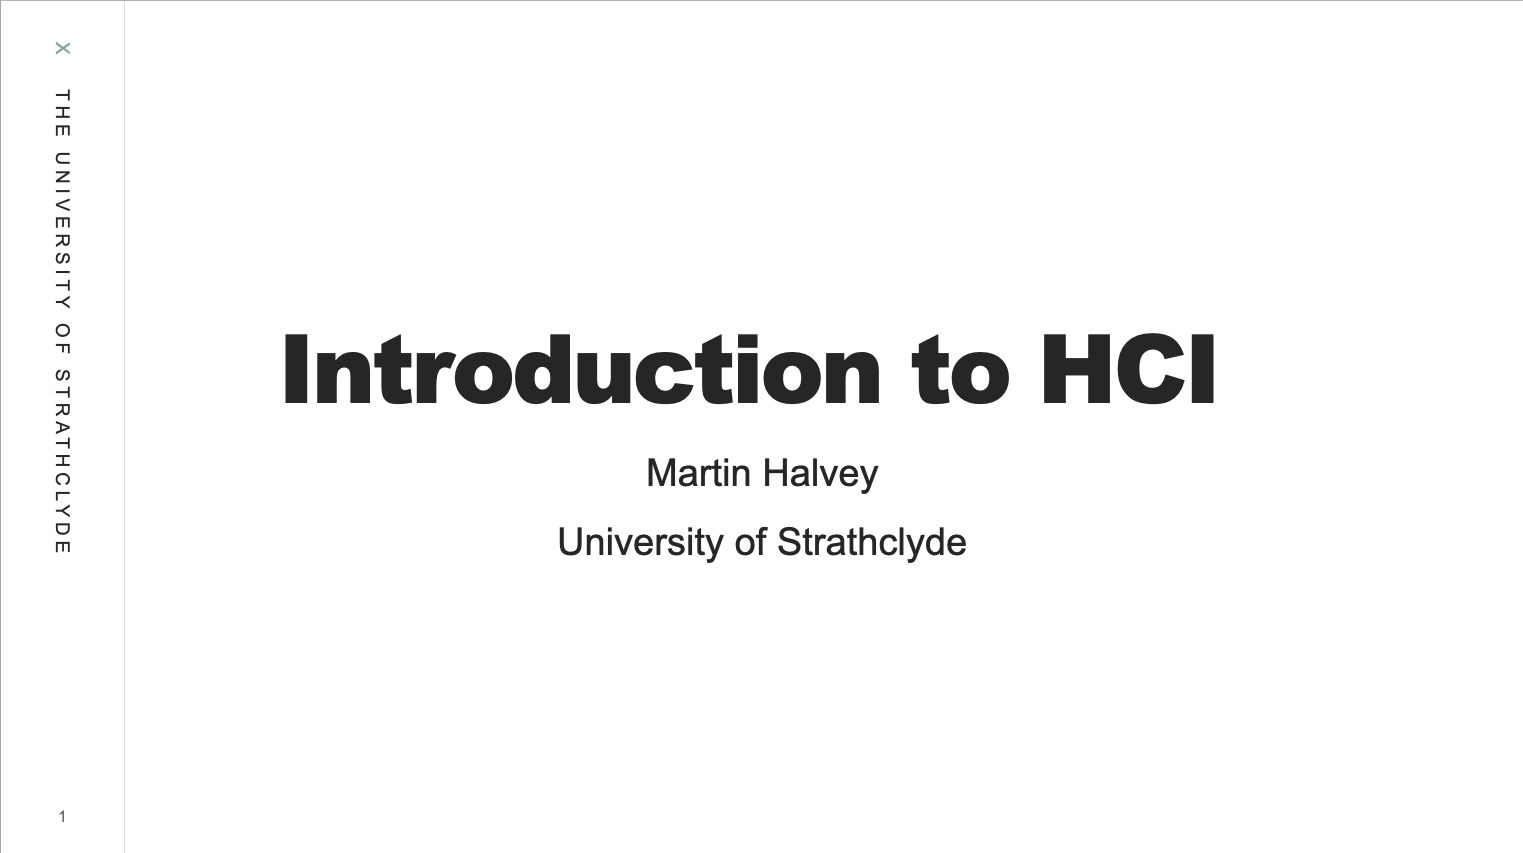 Introduction to HCI